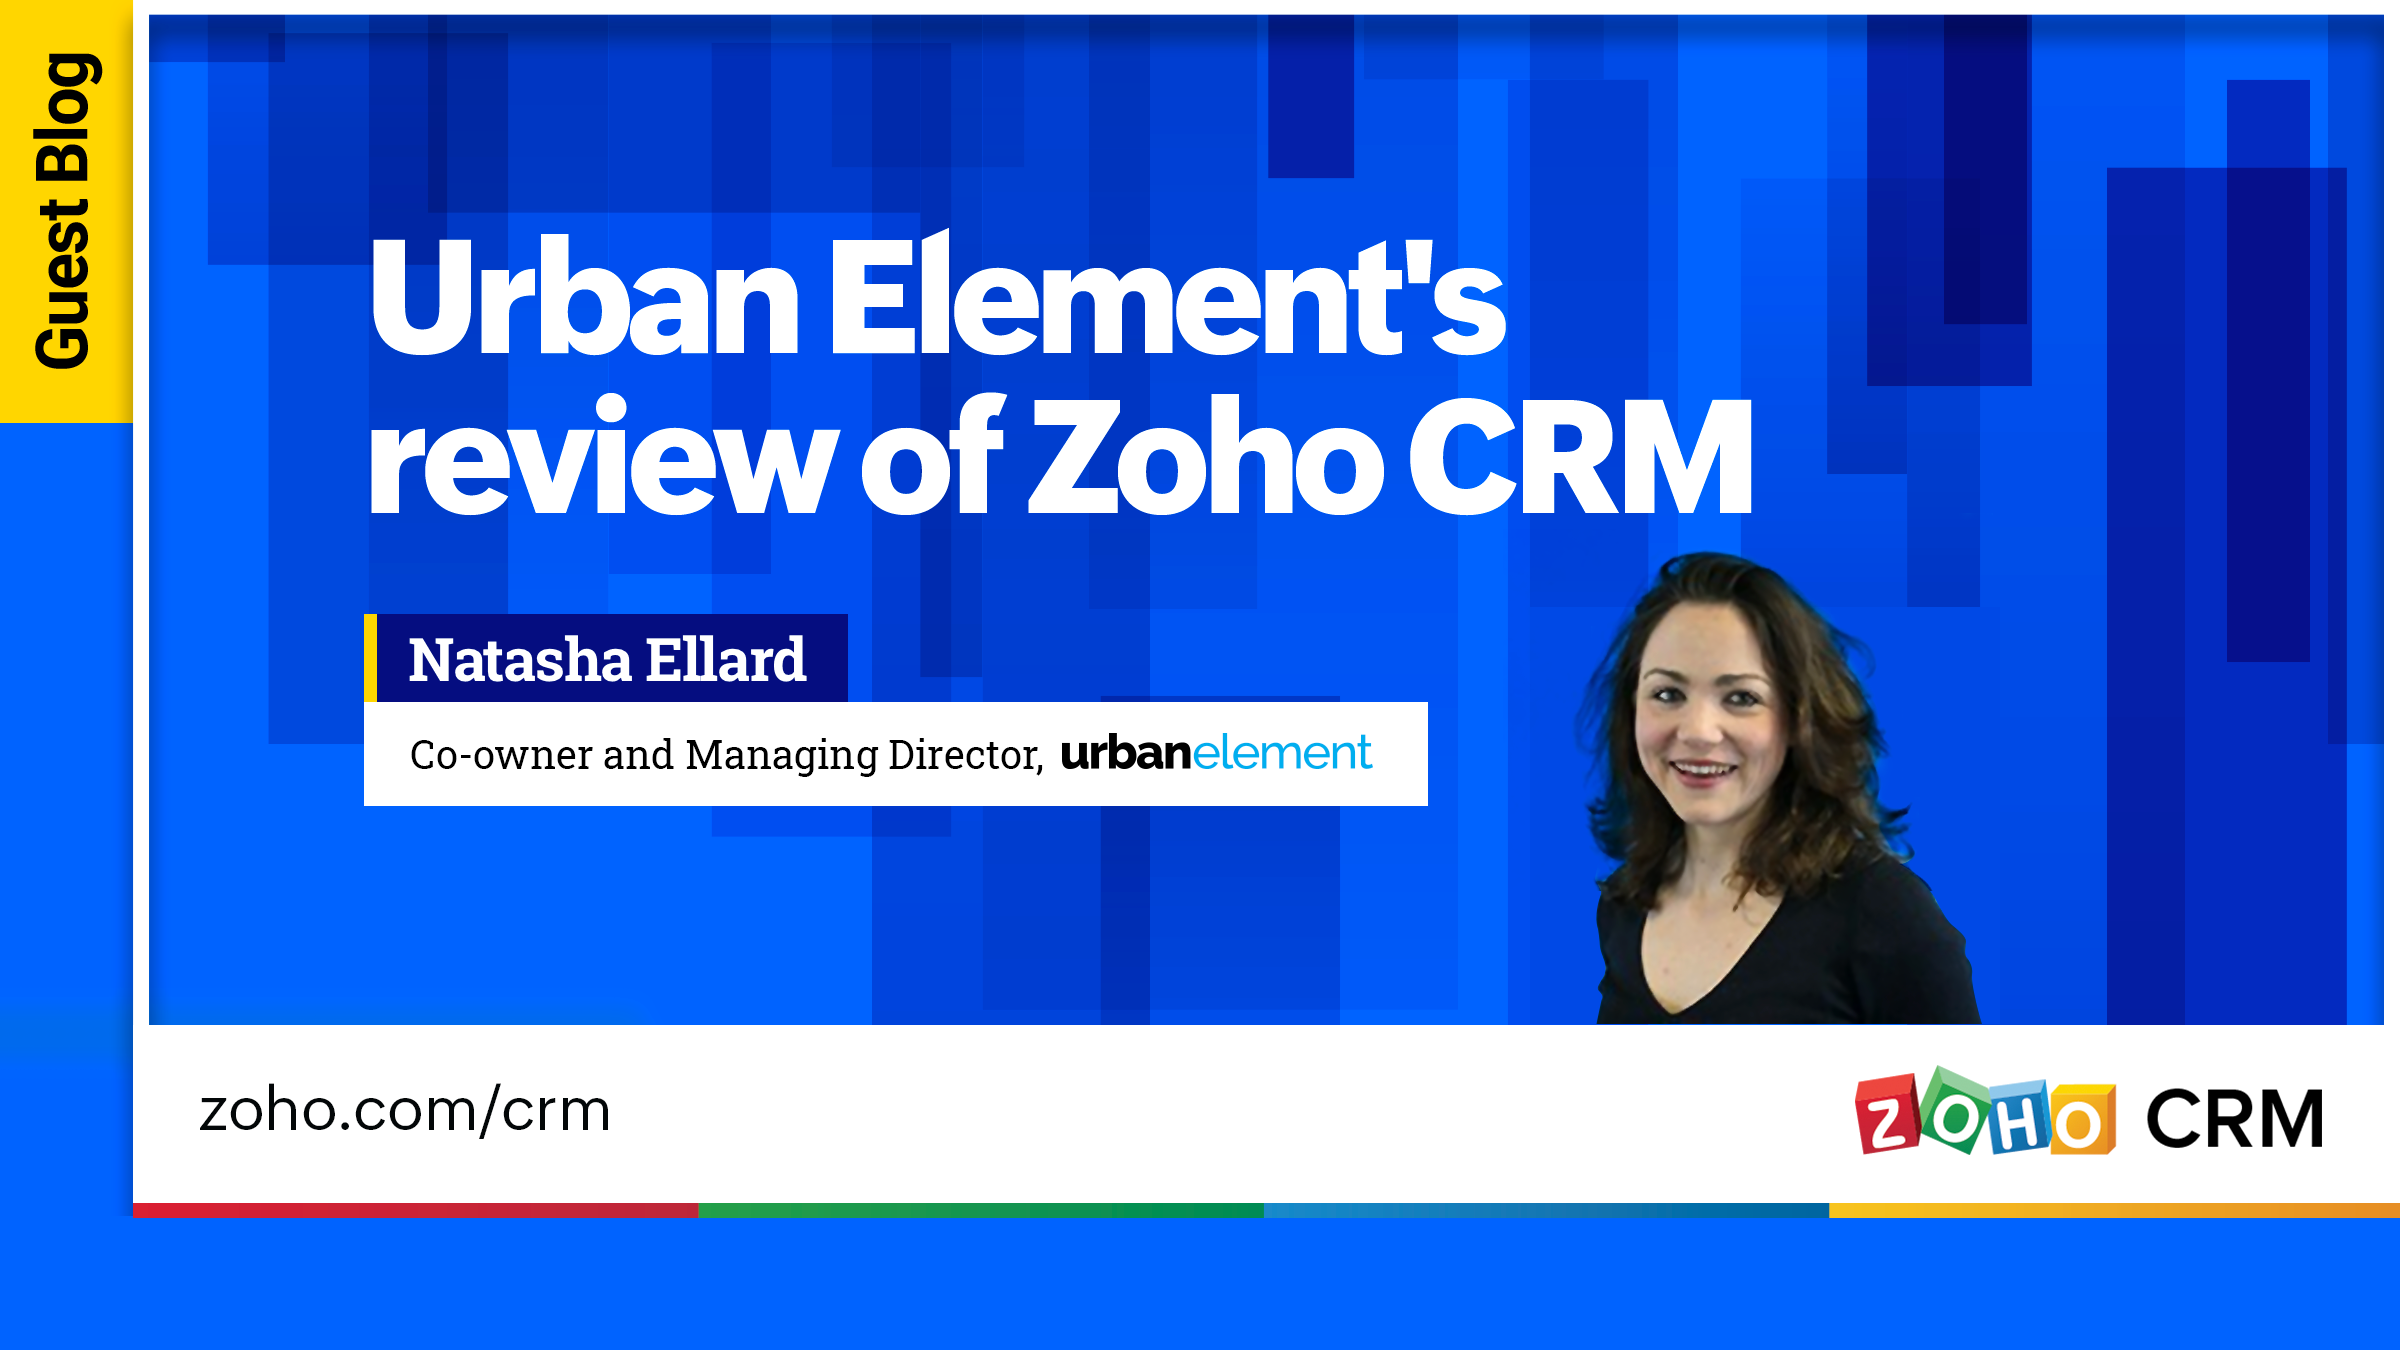 Urban Element Review of Zoho CRM